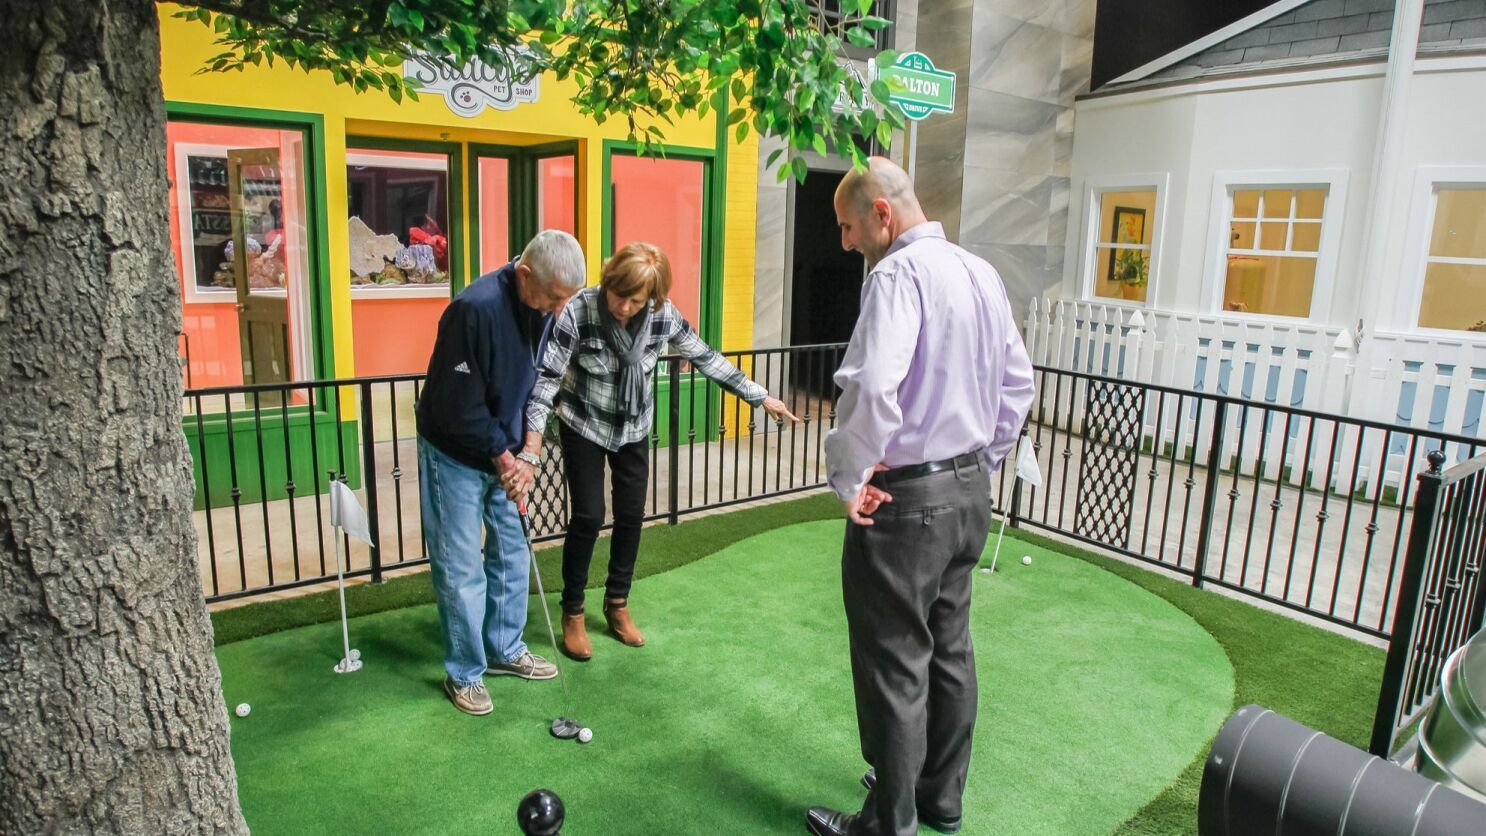 Memory village for Alzheimer's patients set to open - The